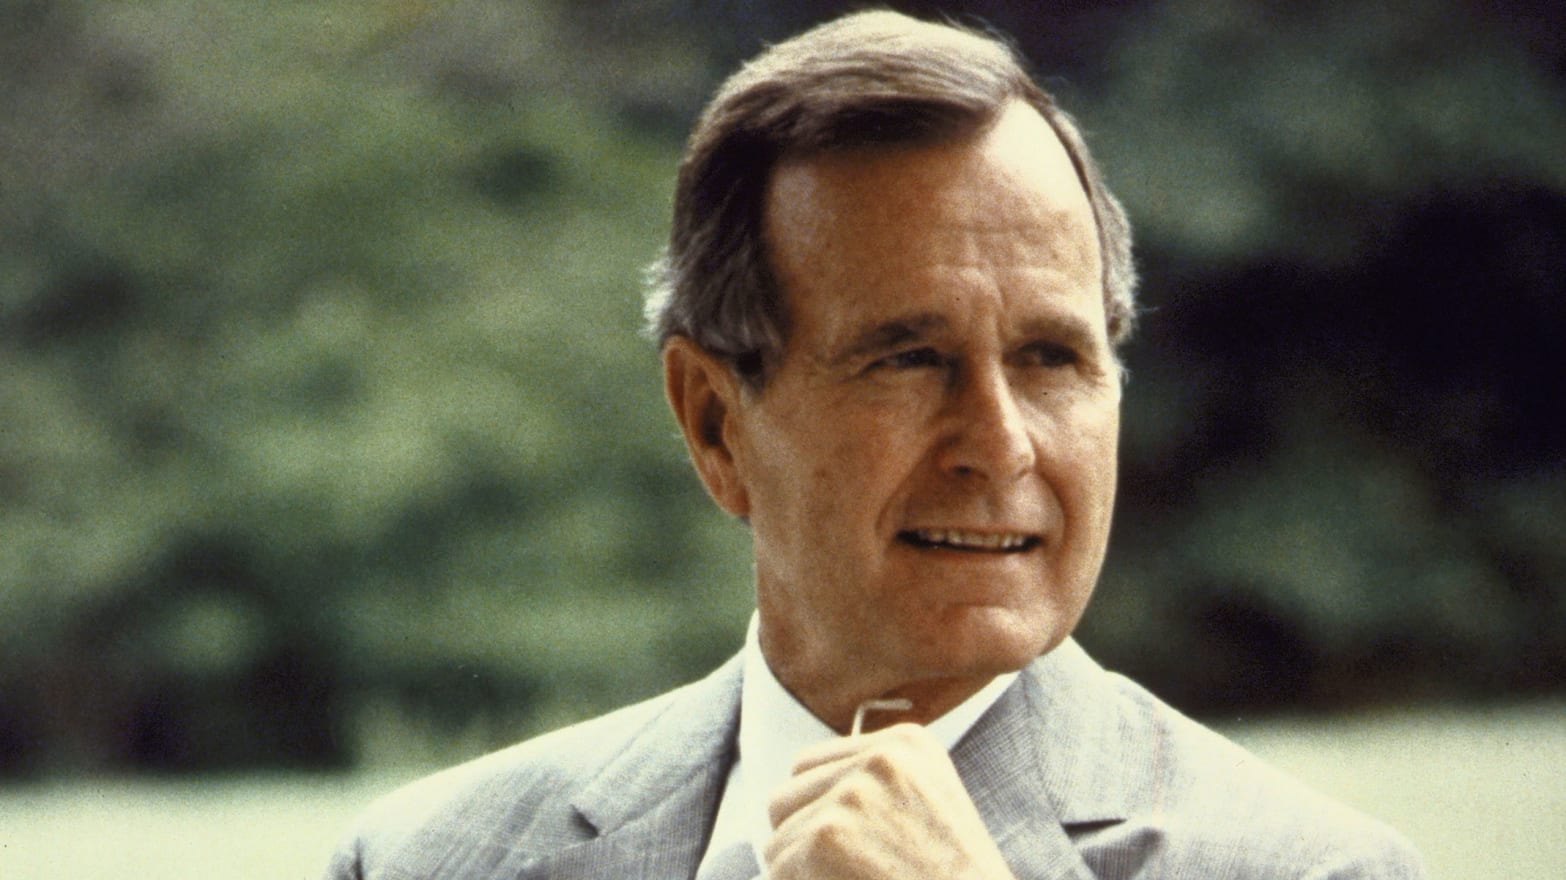 George H W Bush President Internationalist War Hero Dead At 94